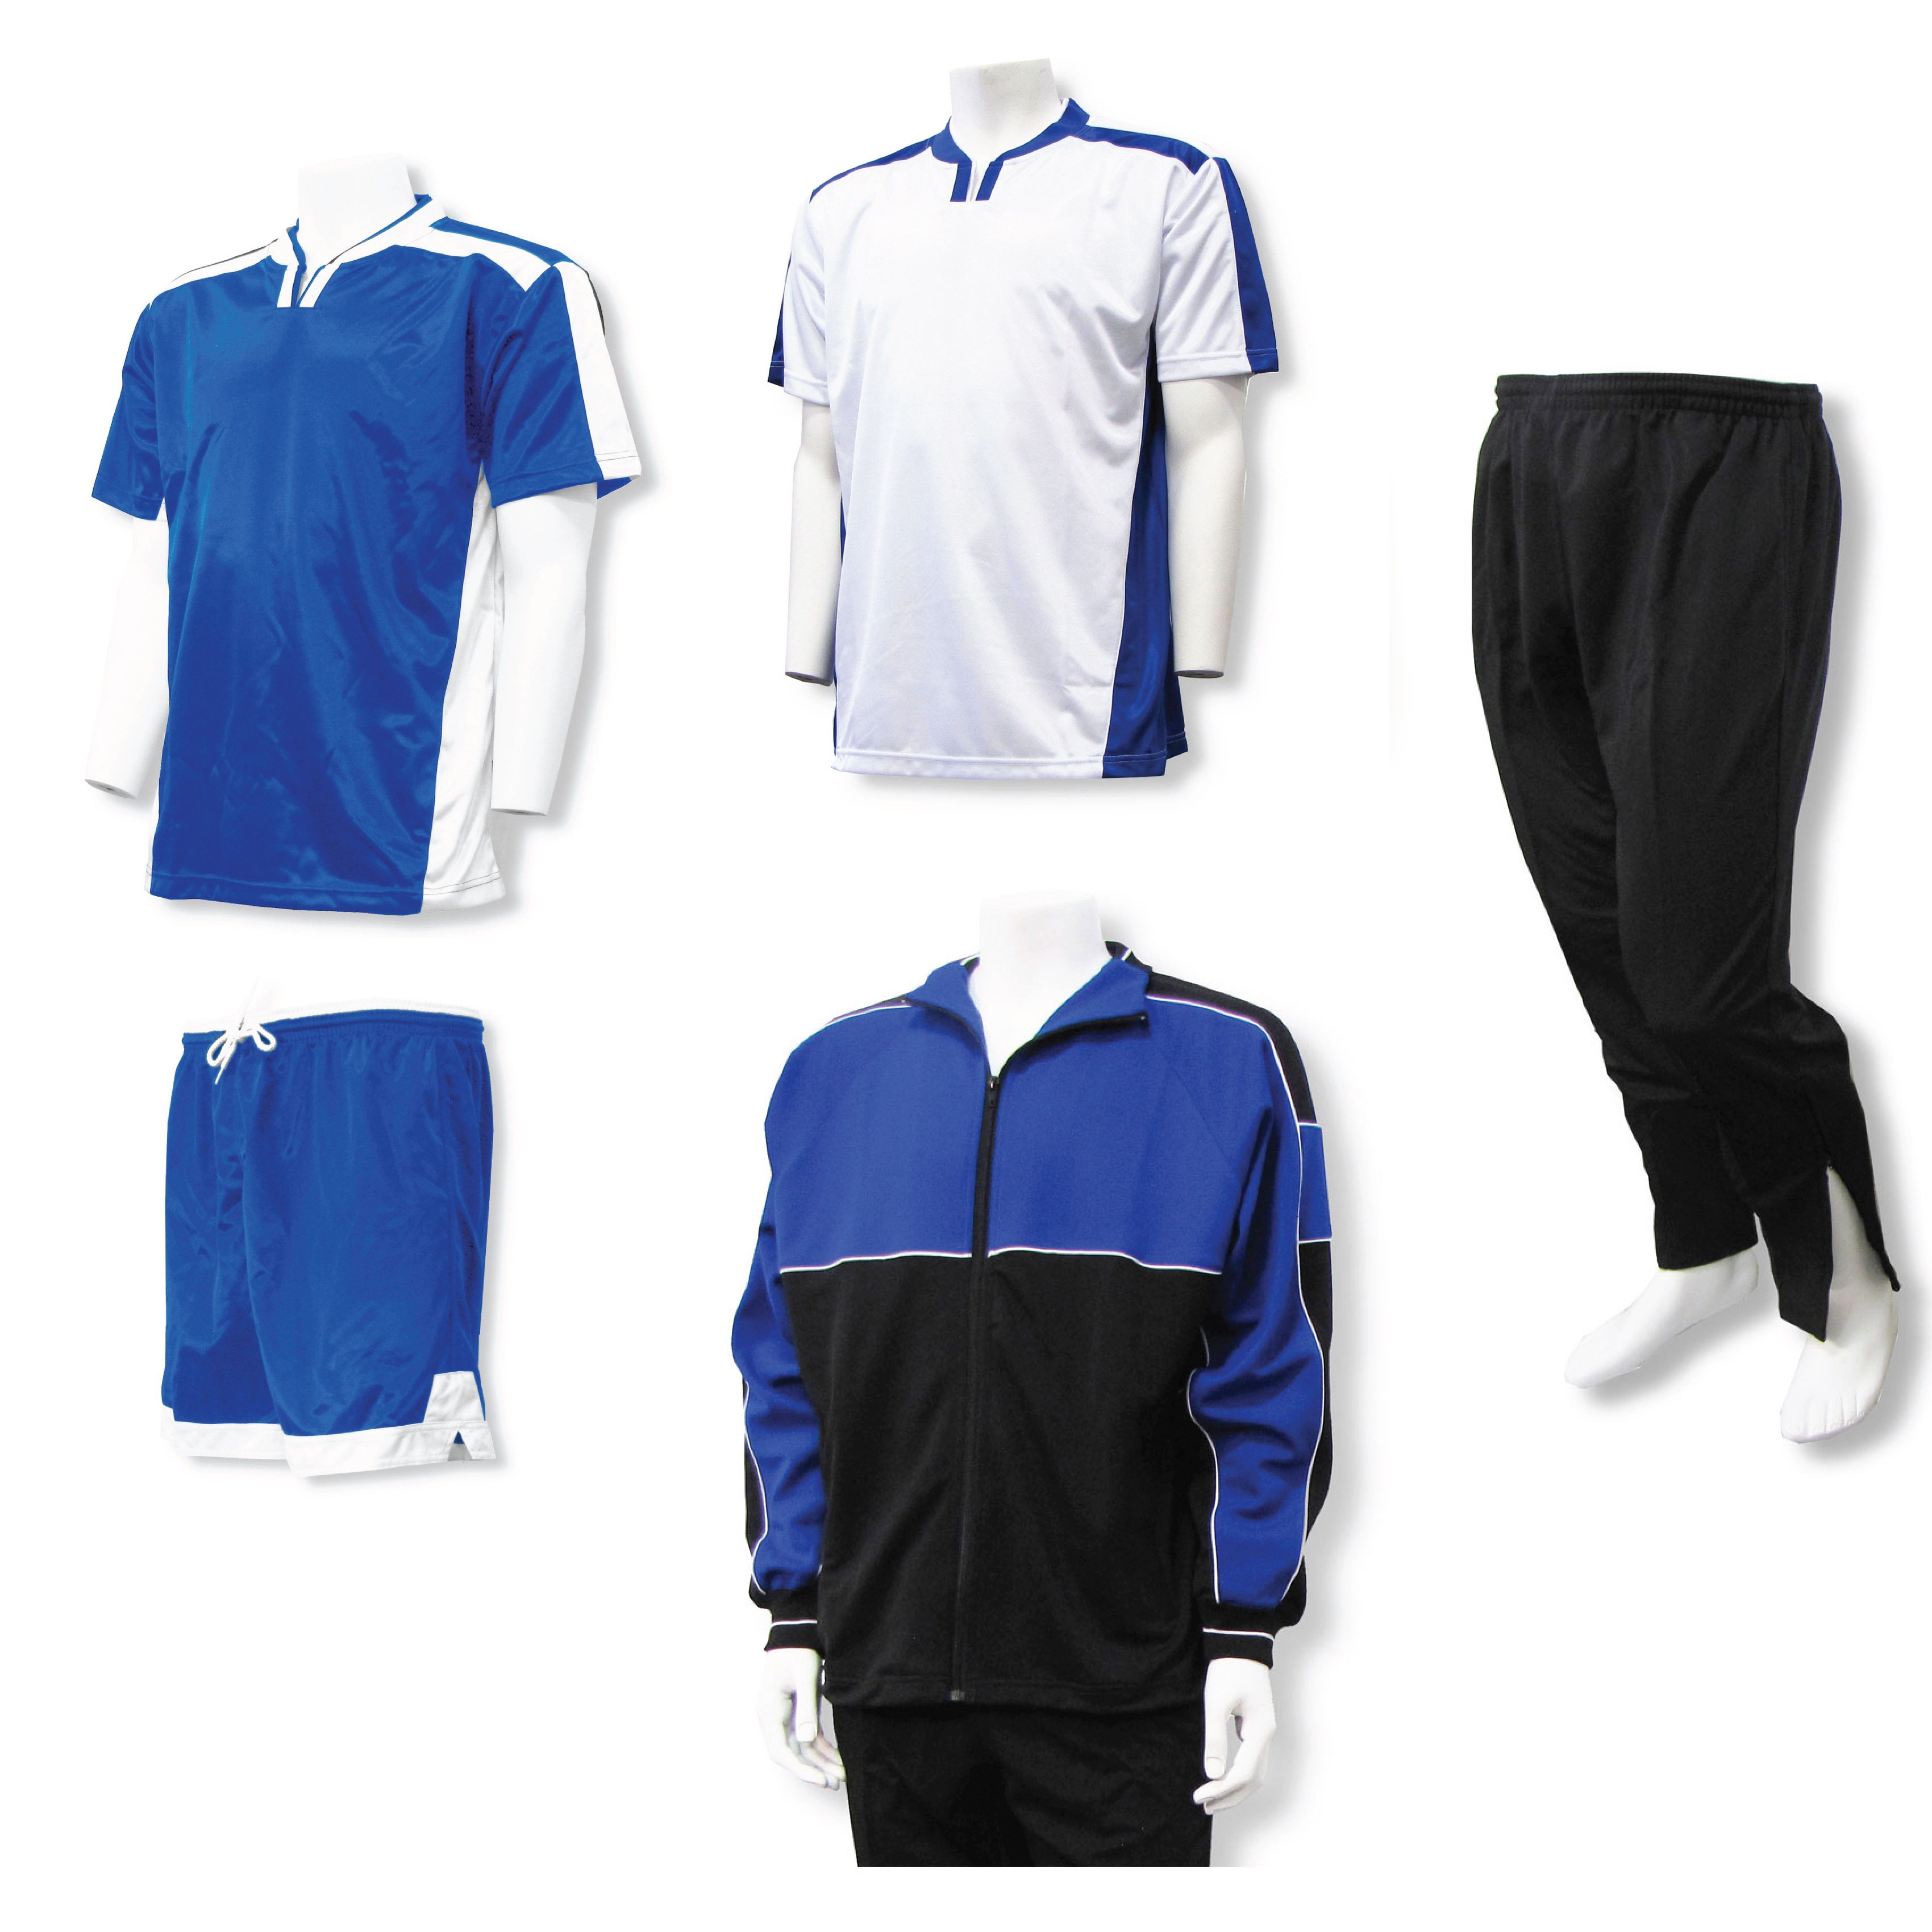 Winchester soccer team package including soccer uniform and warm-ups in royal/white by Code Four Atheltics